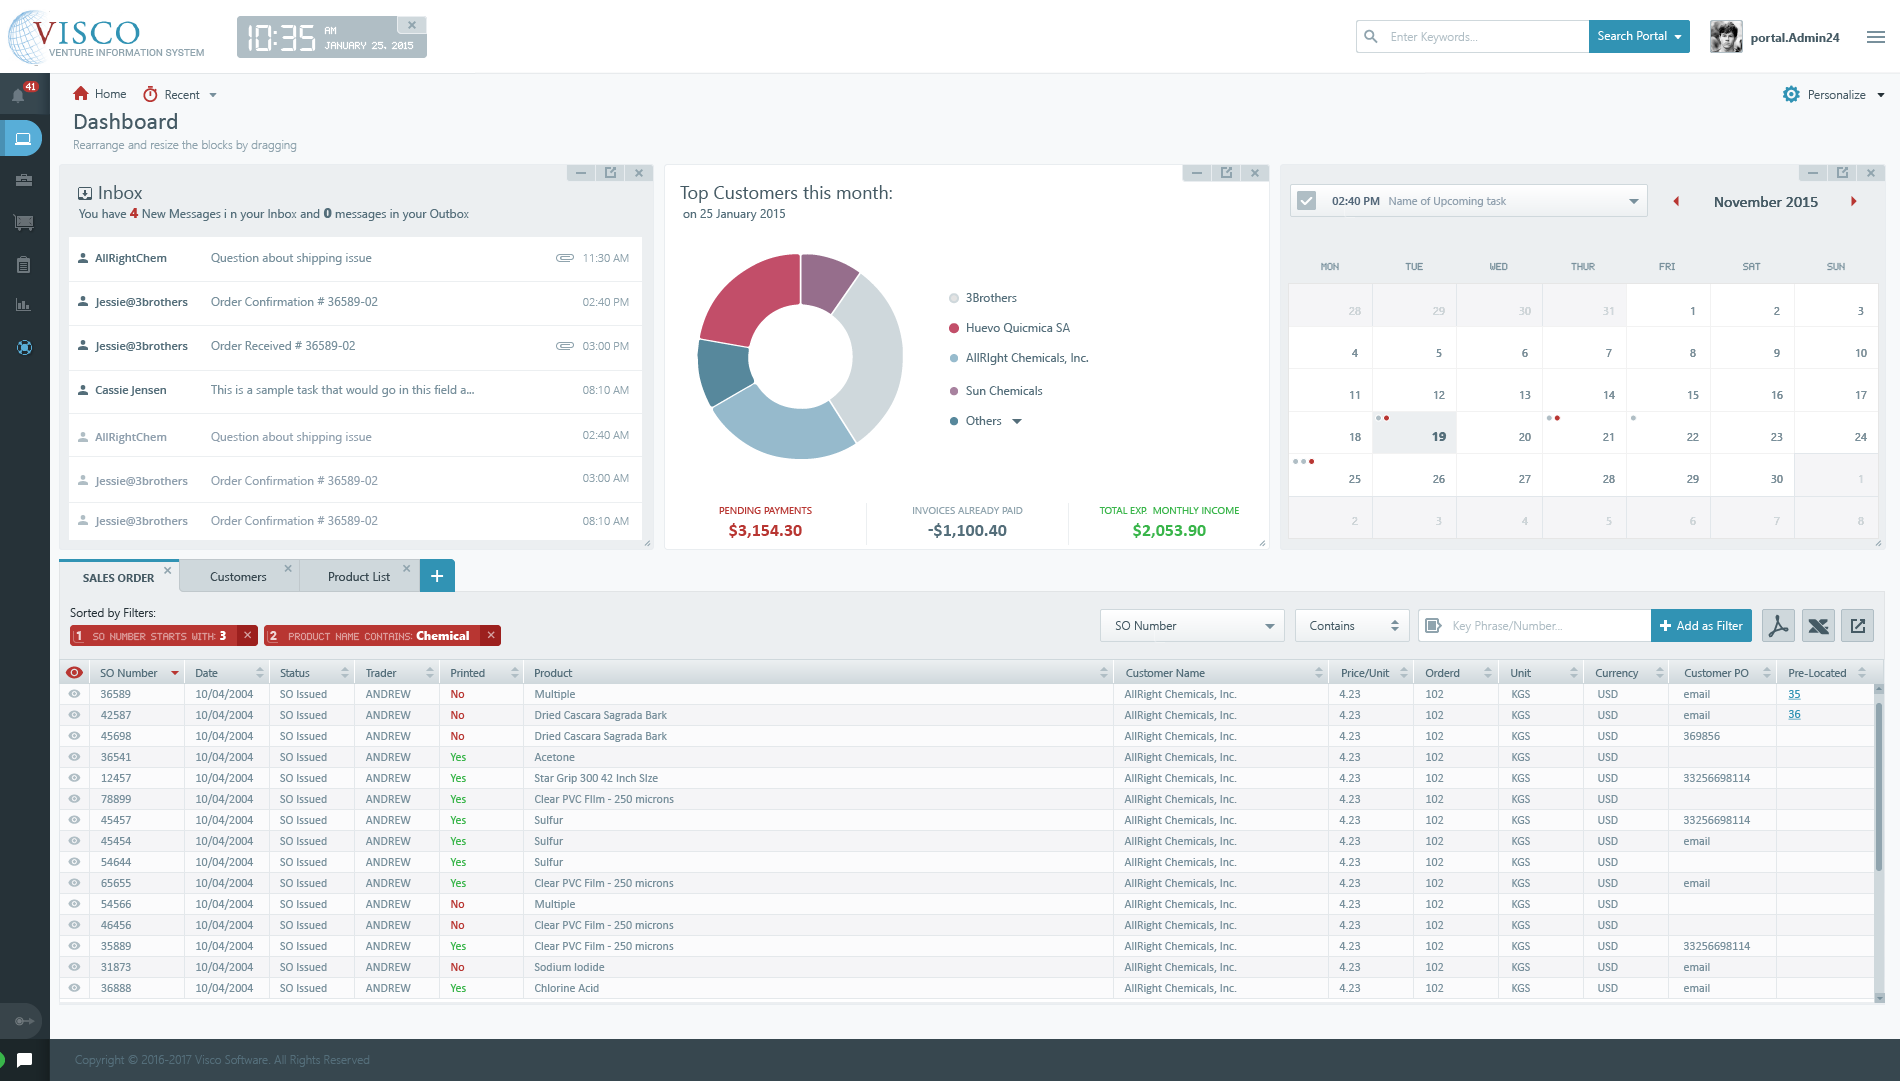 The dashboard gives users an overview of messages, customers, scheduled tasks, and orders